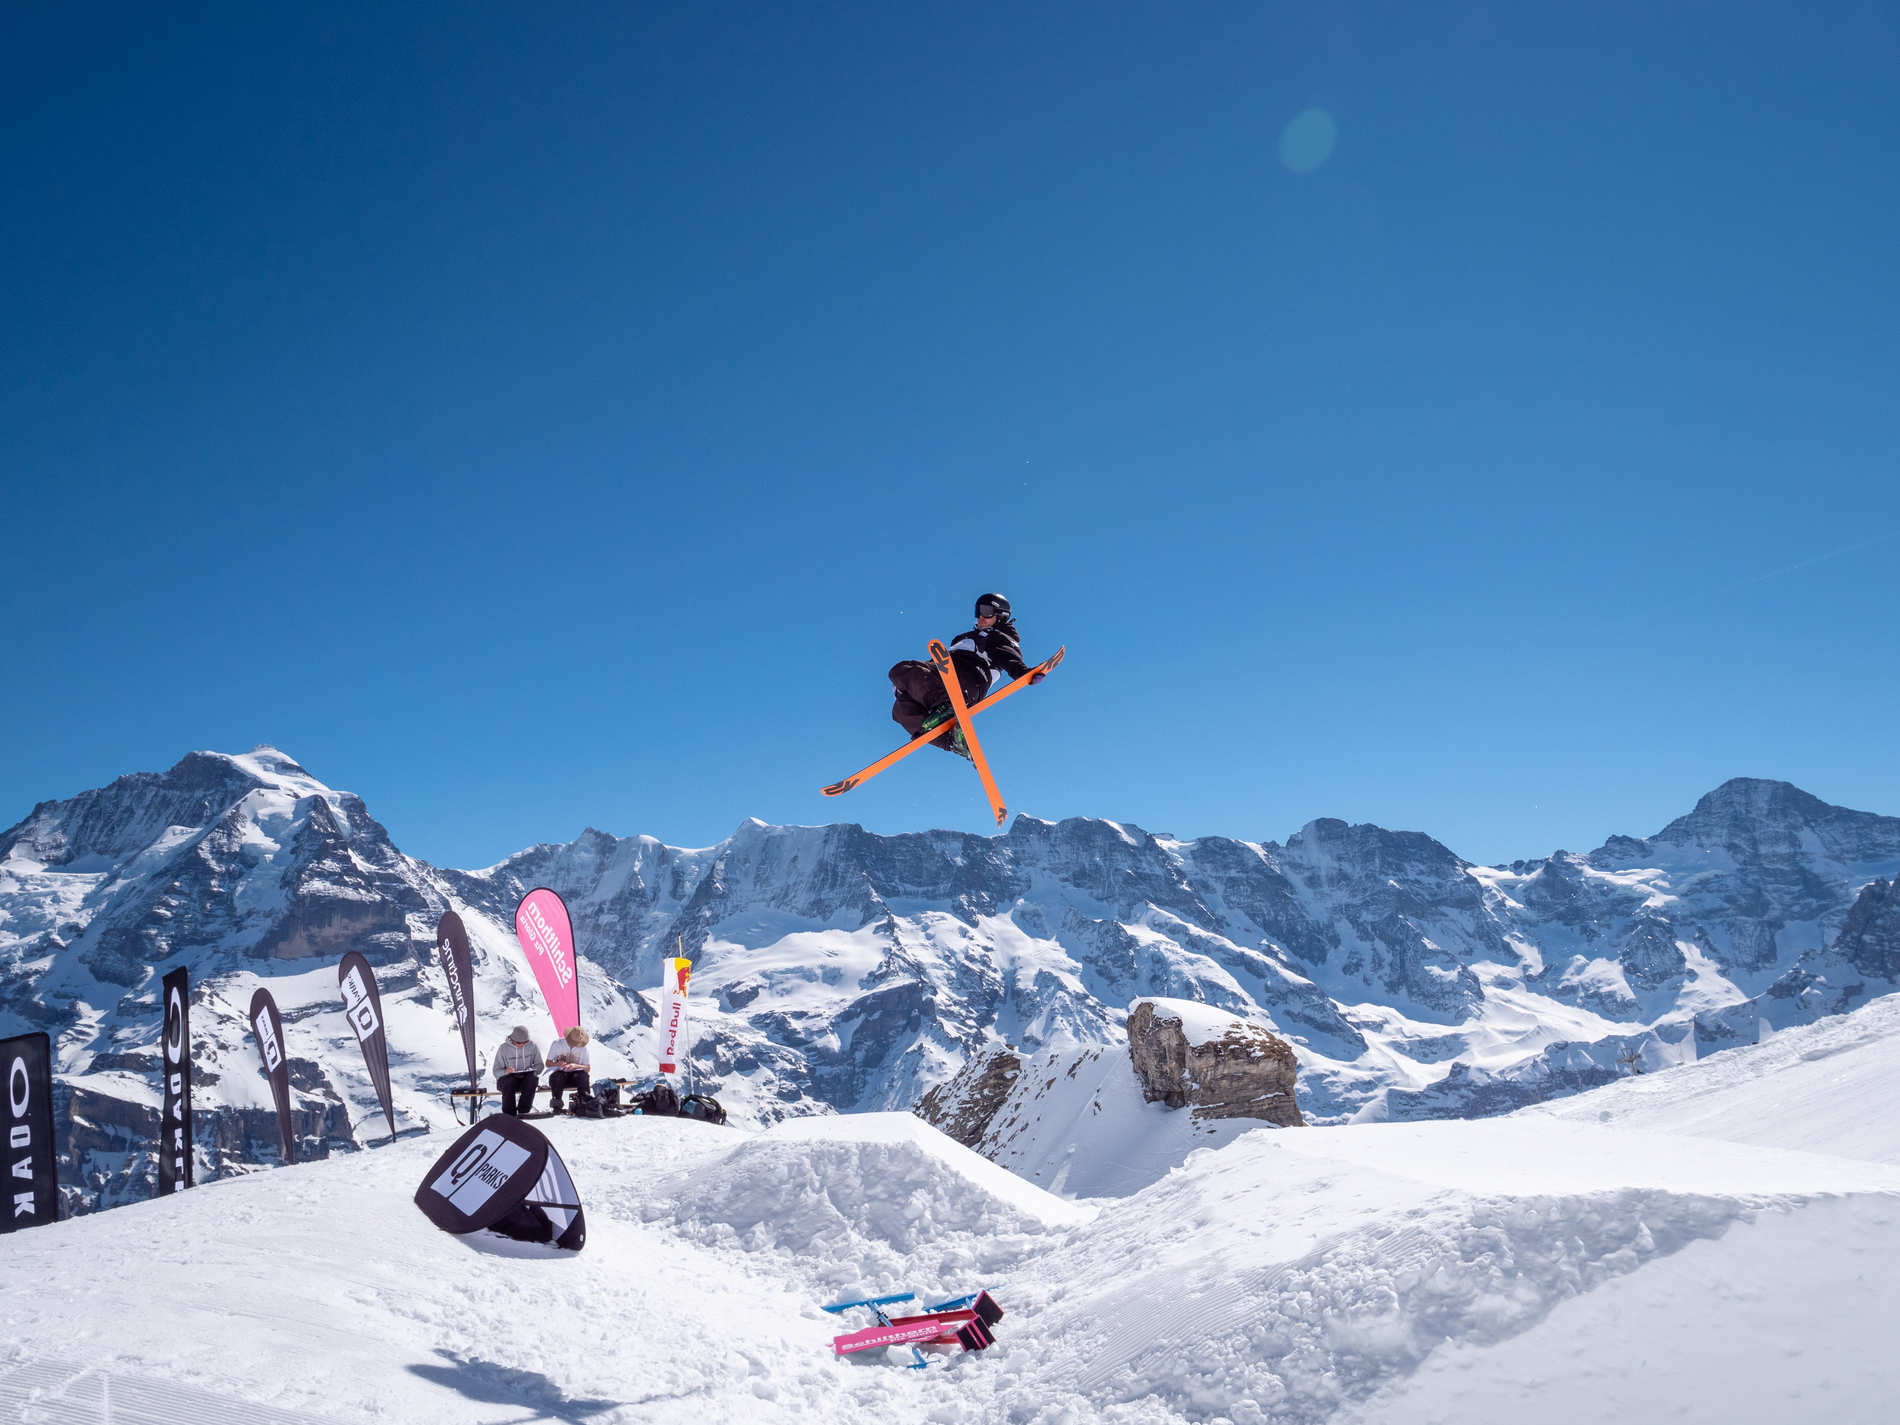 schilthorn 23 03 2019 action fs unknown patrick luchs qparks 021